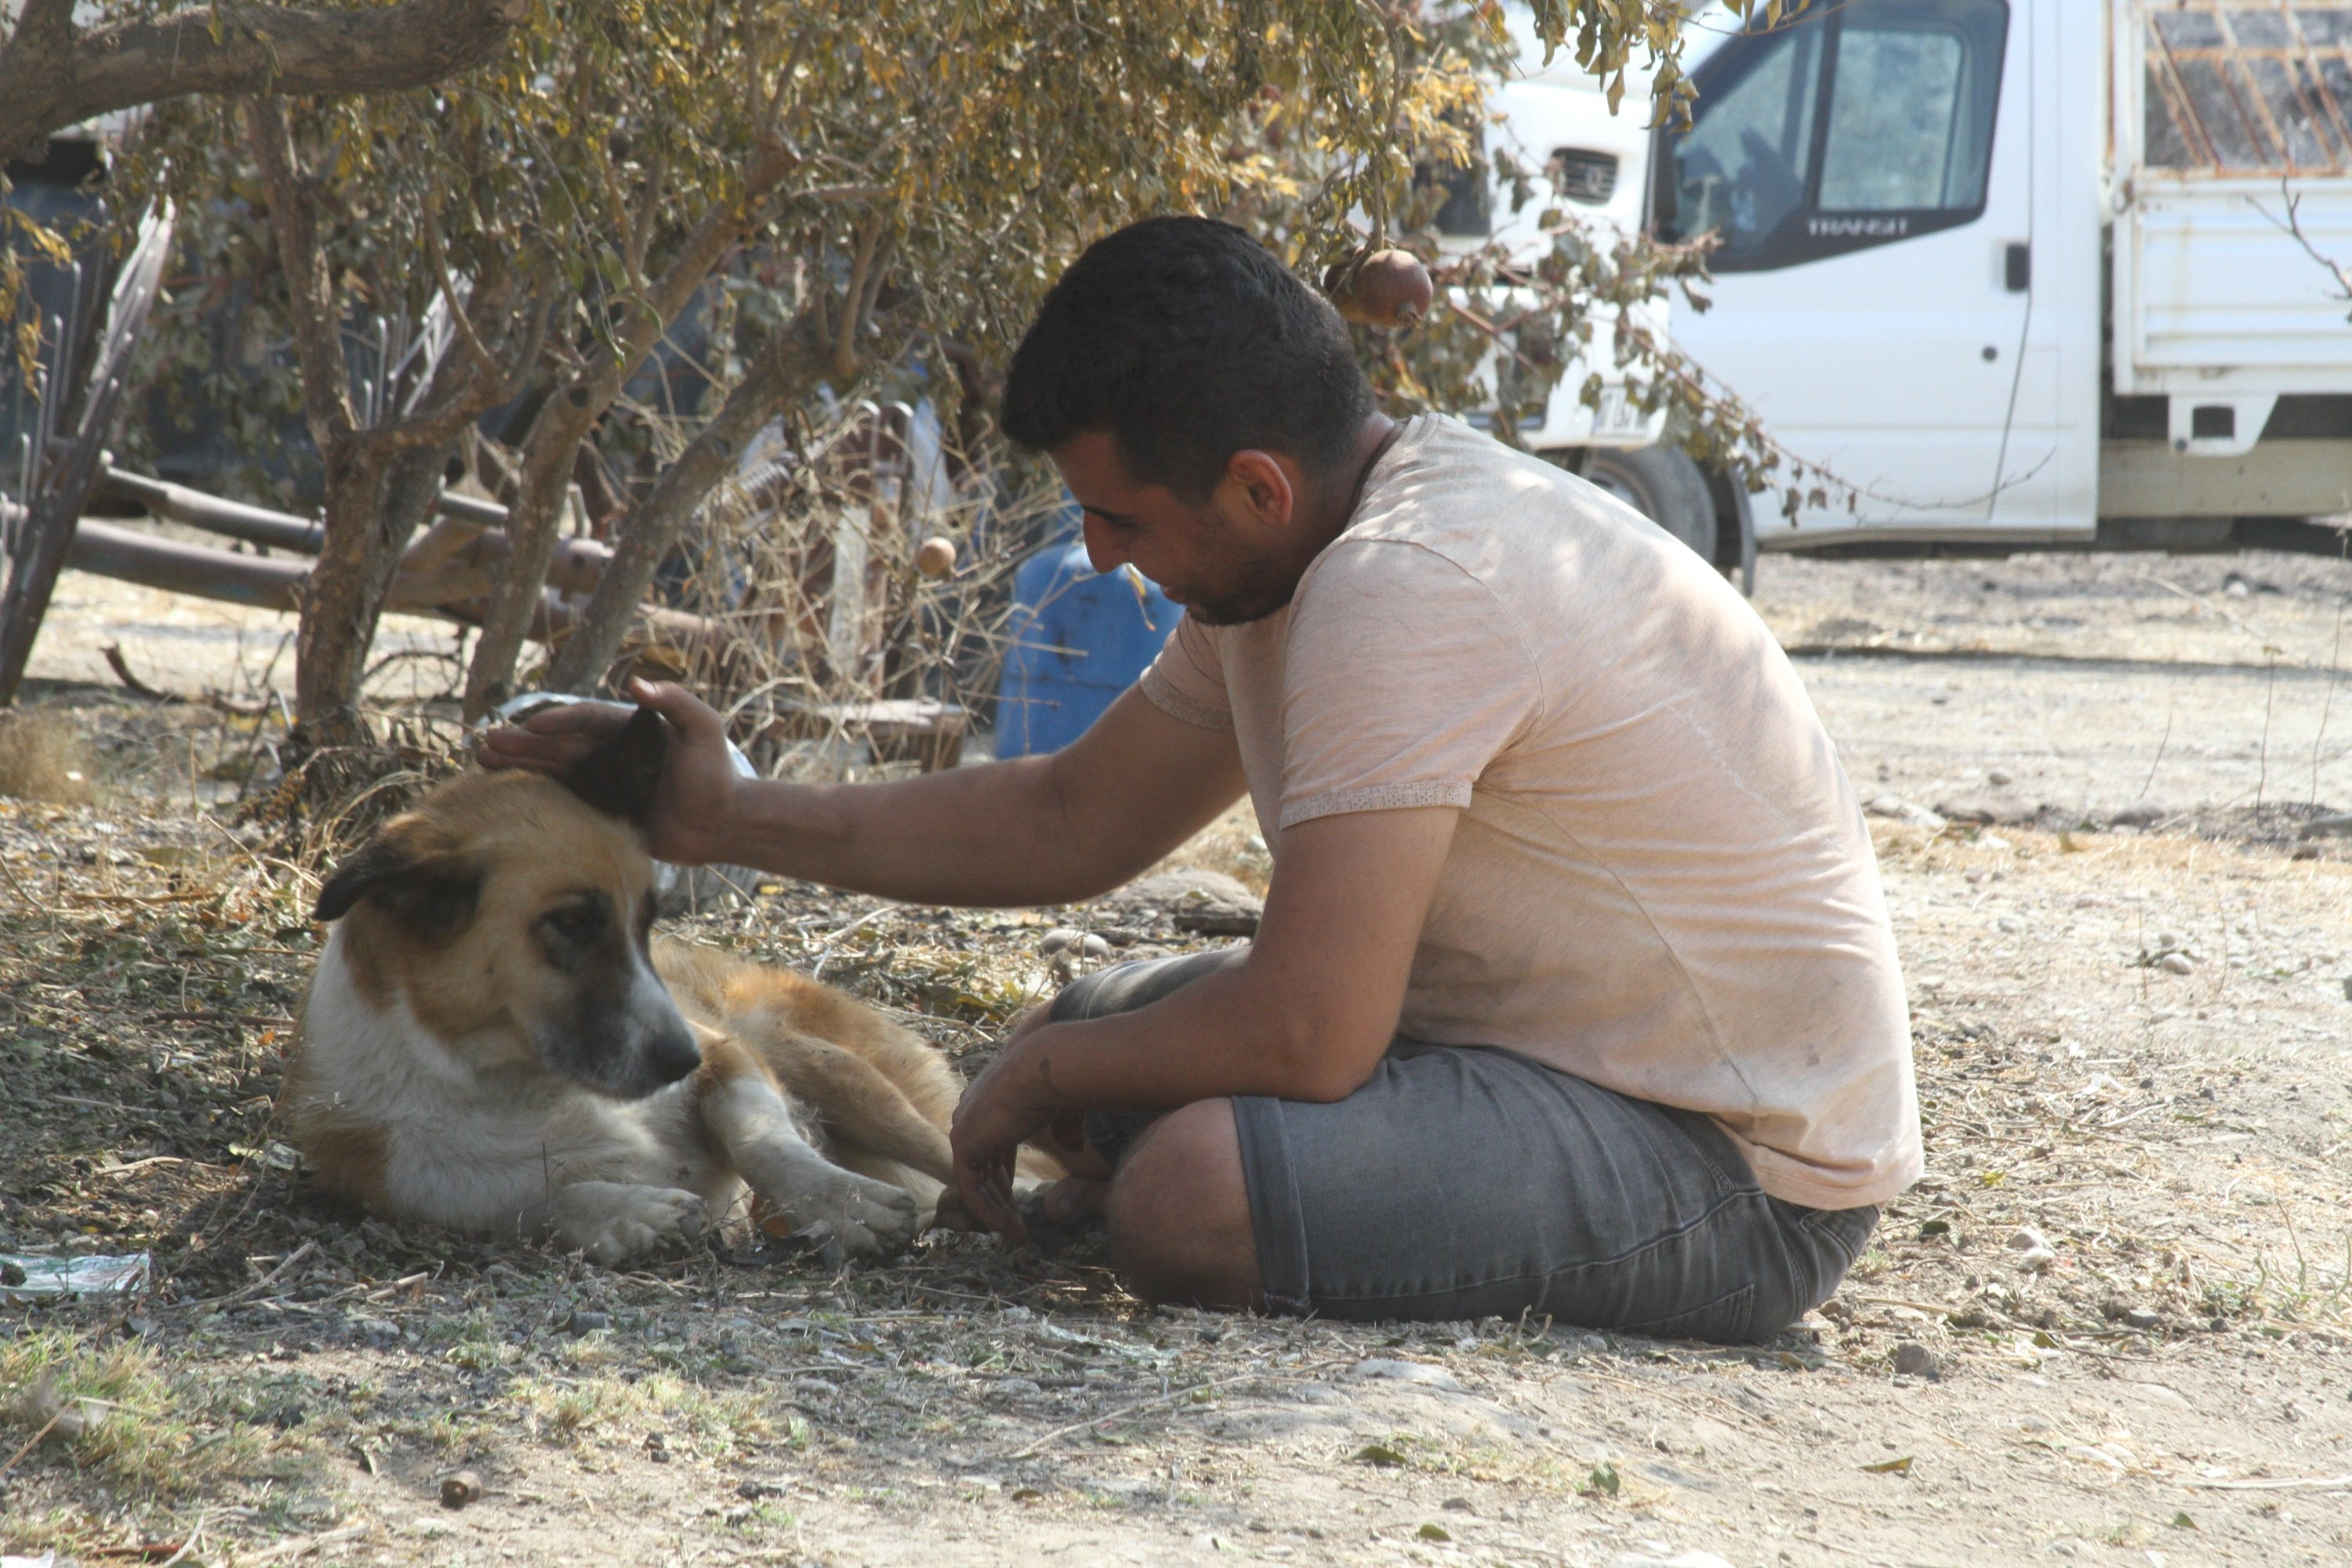 Sercan Bayar pets his dog who returned four days later after his disappearance, in Antalya, southern Turkey, Aug. 6, 2021. (IHA PHOTO)